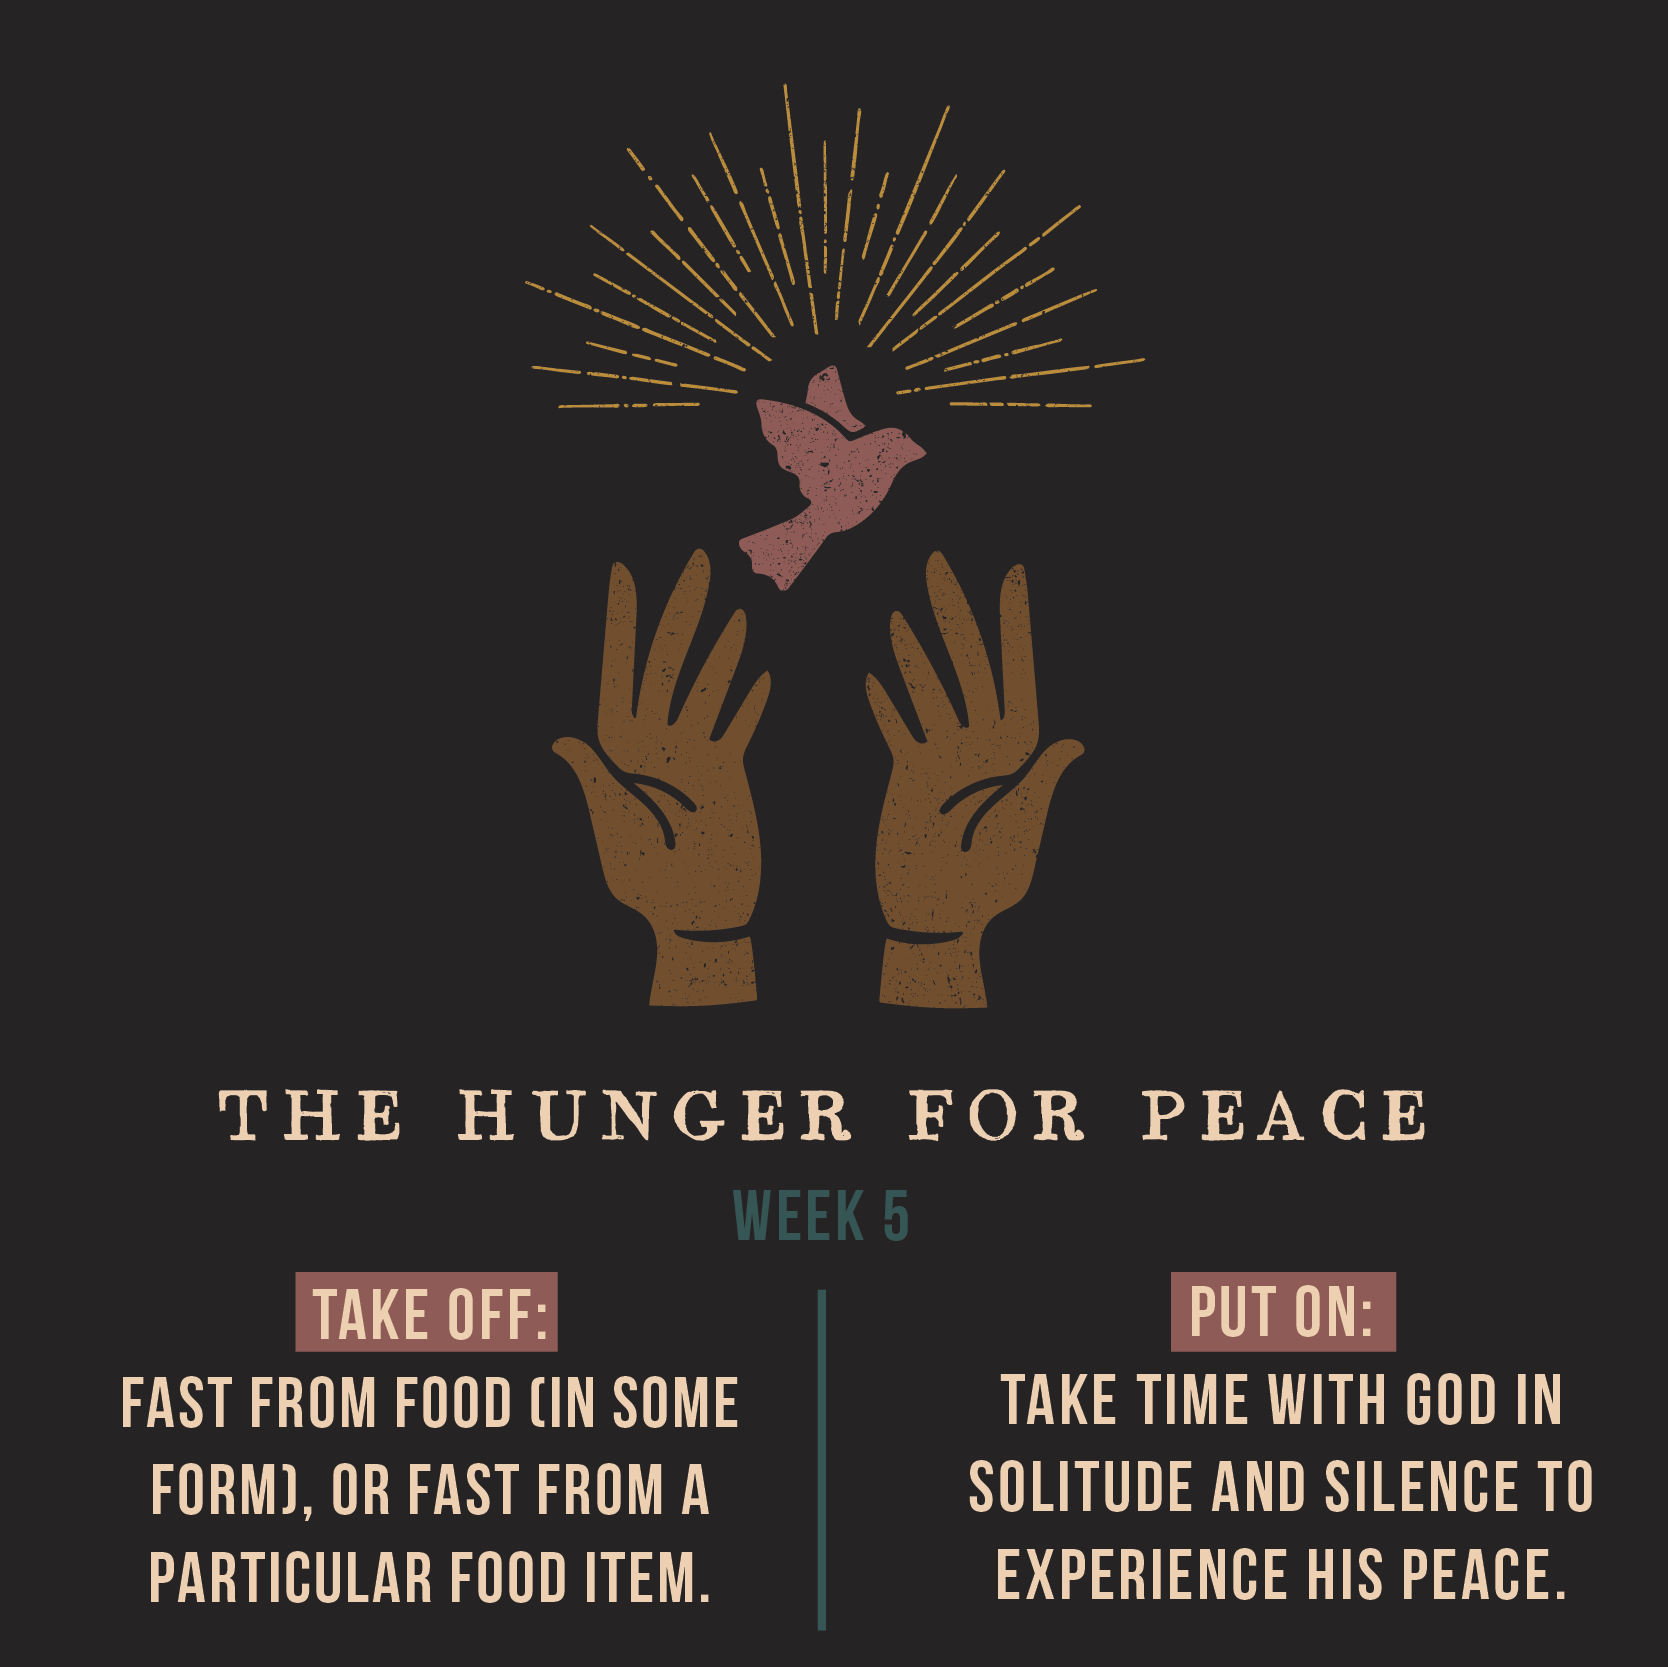 the-hunger-for-peace-wk-5-01.png